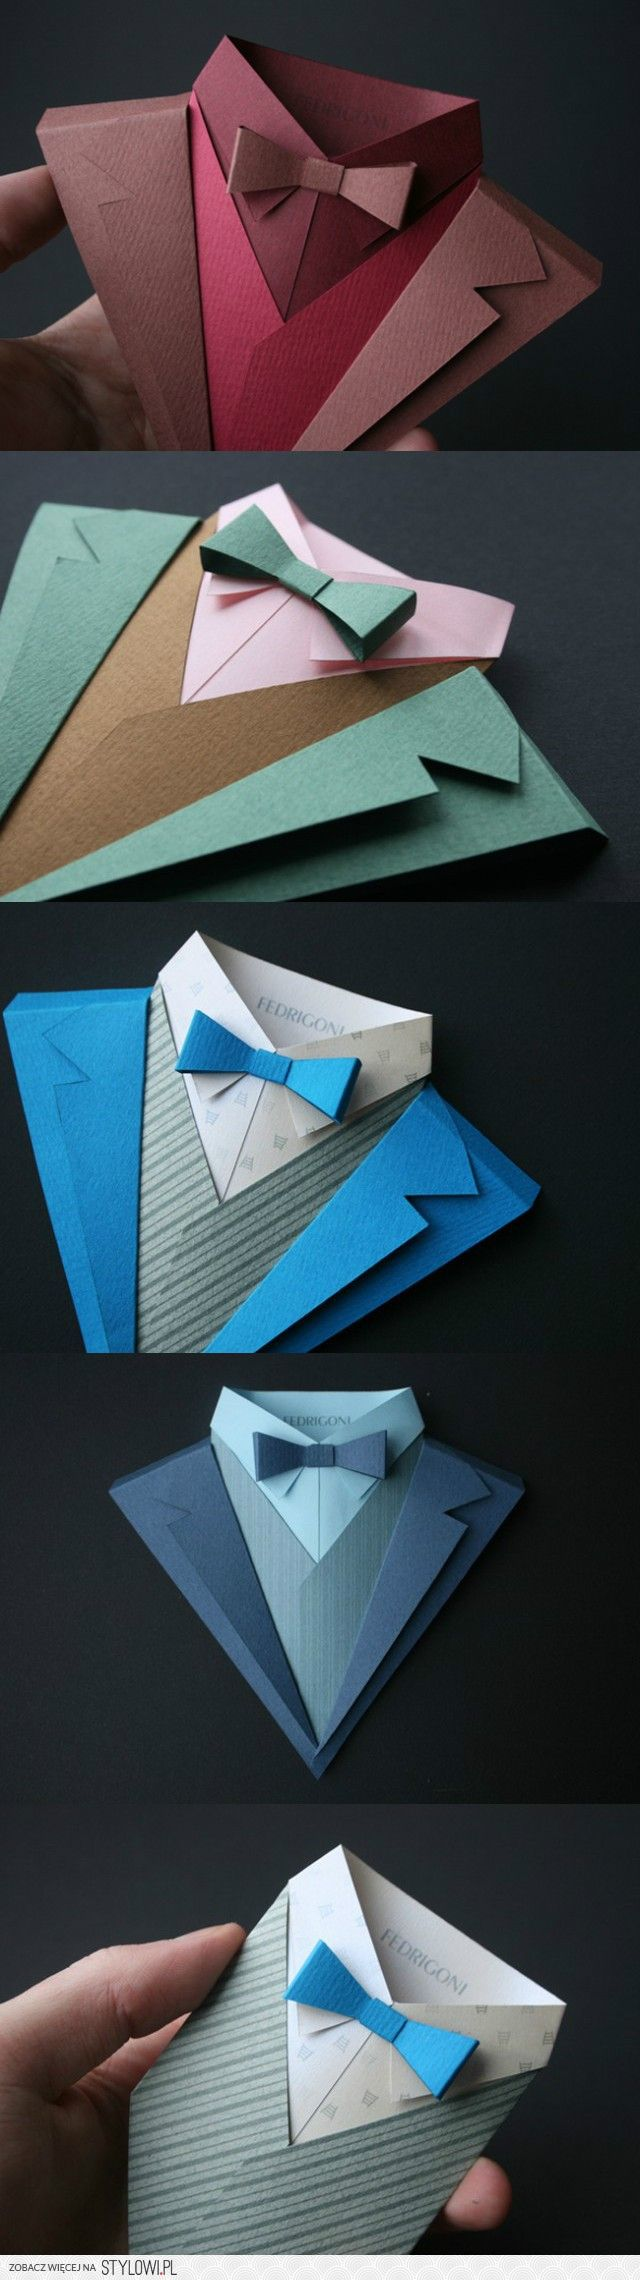 just the picture from Popular Pix, need to figure out how to fold this. Start with pillow box, I think